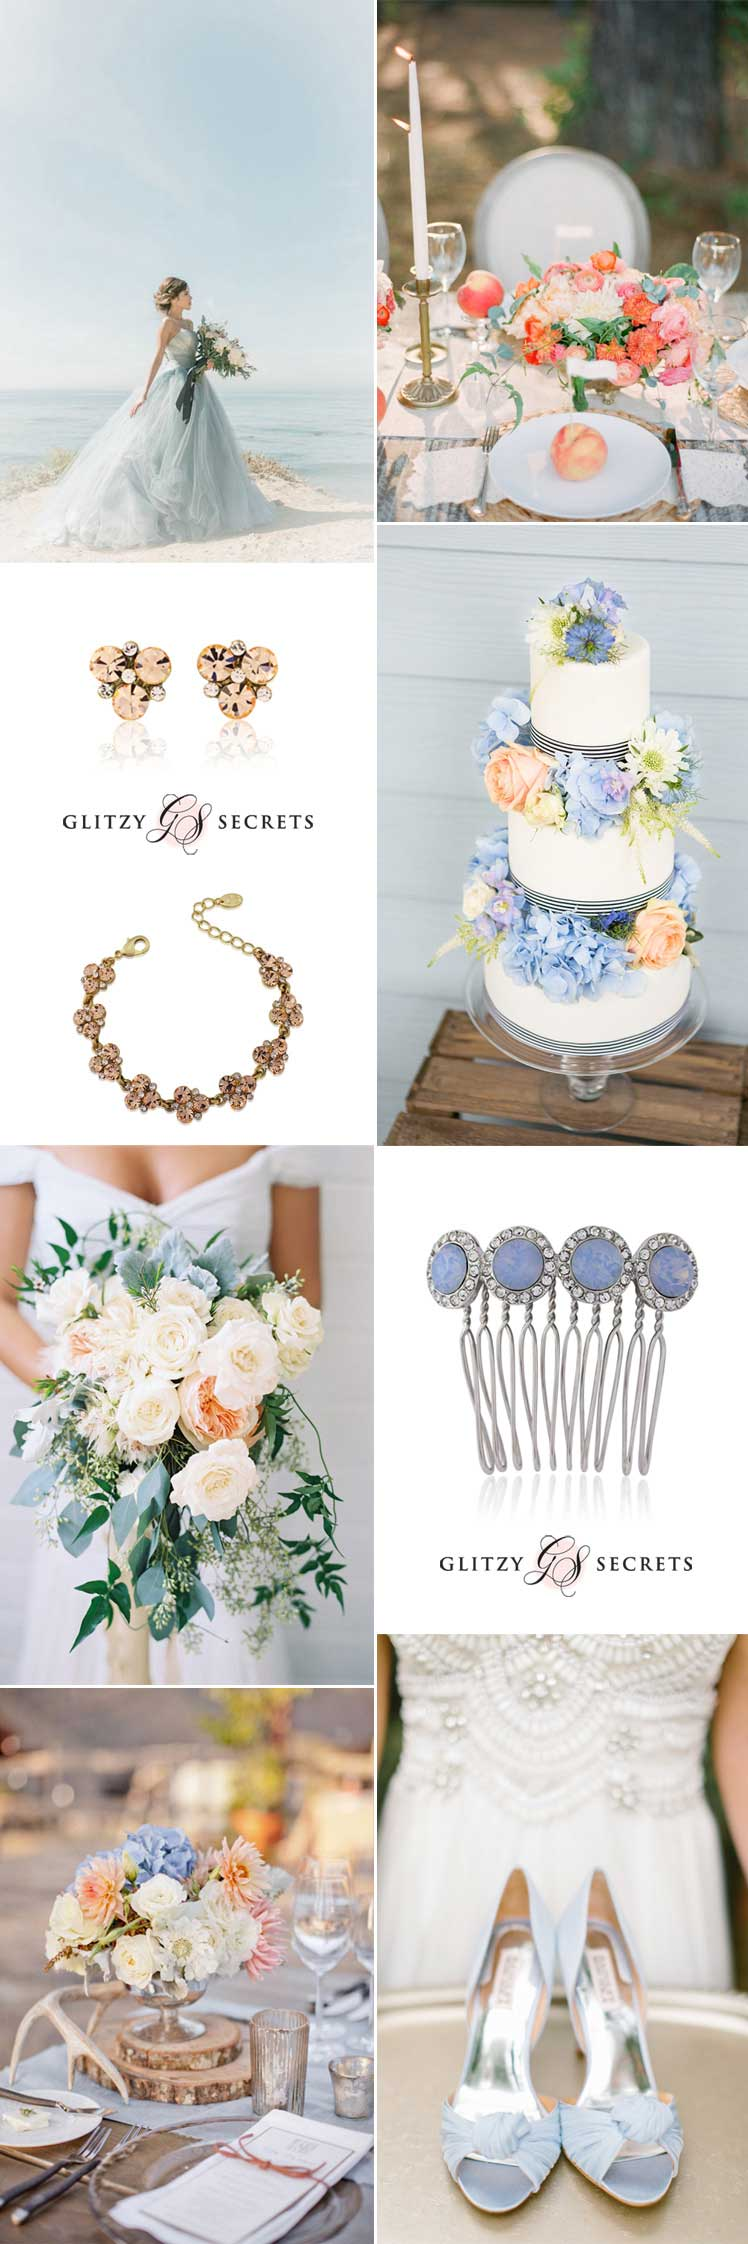 pretty peach and blue wedding ideas